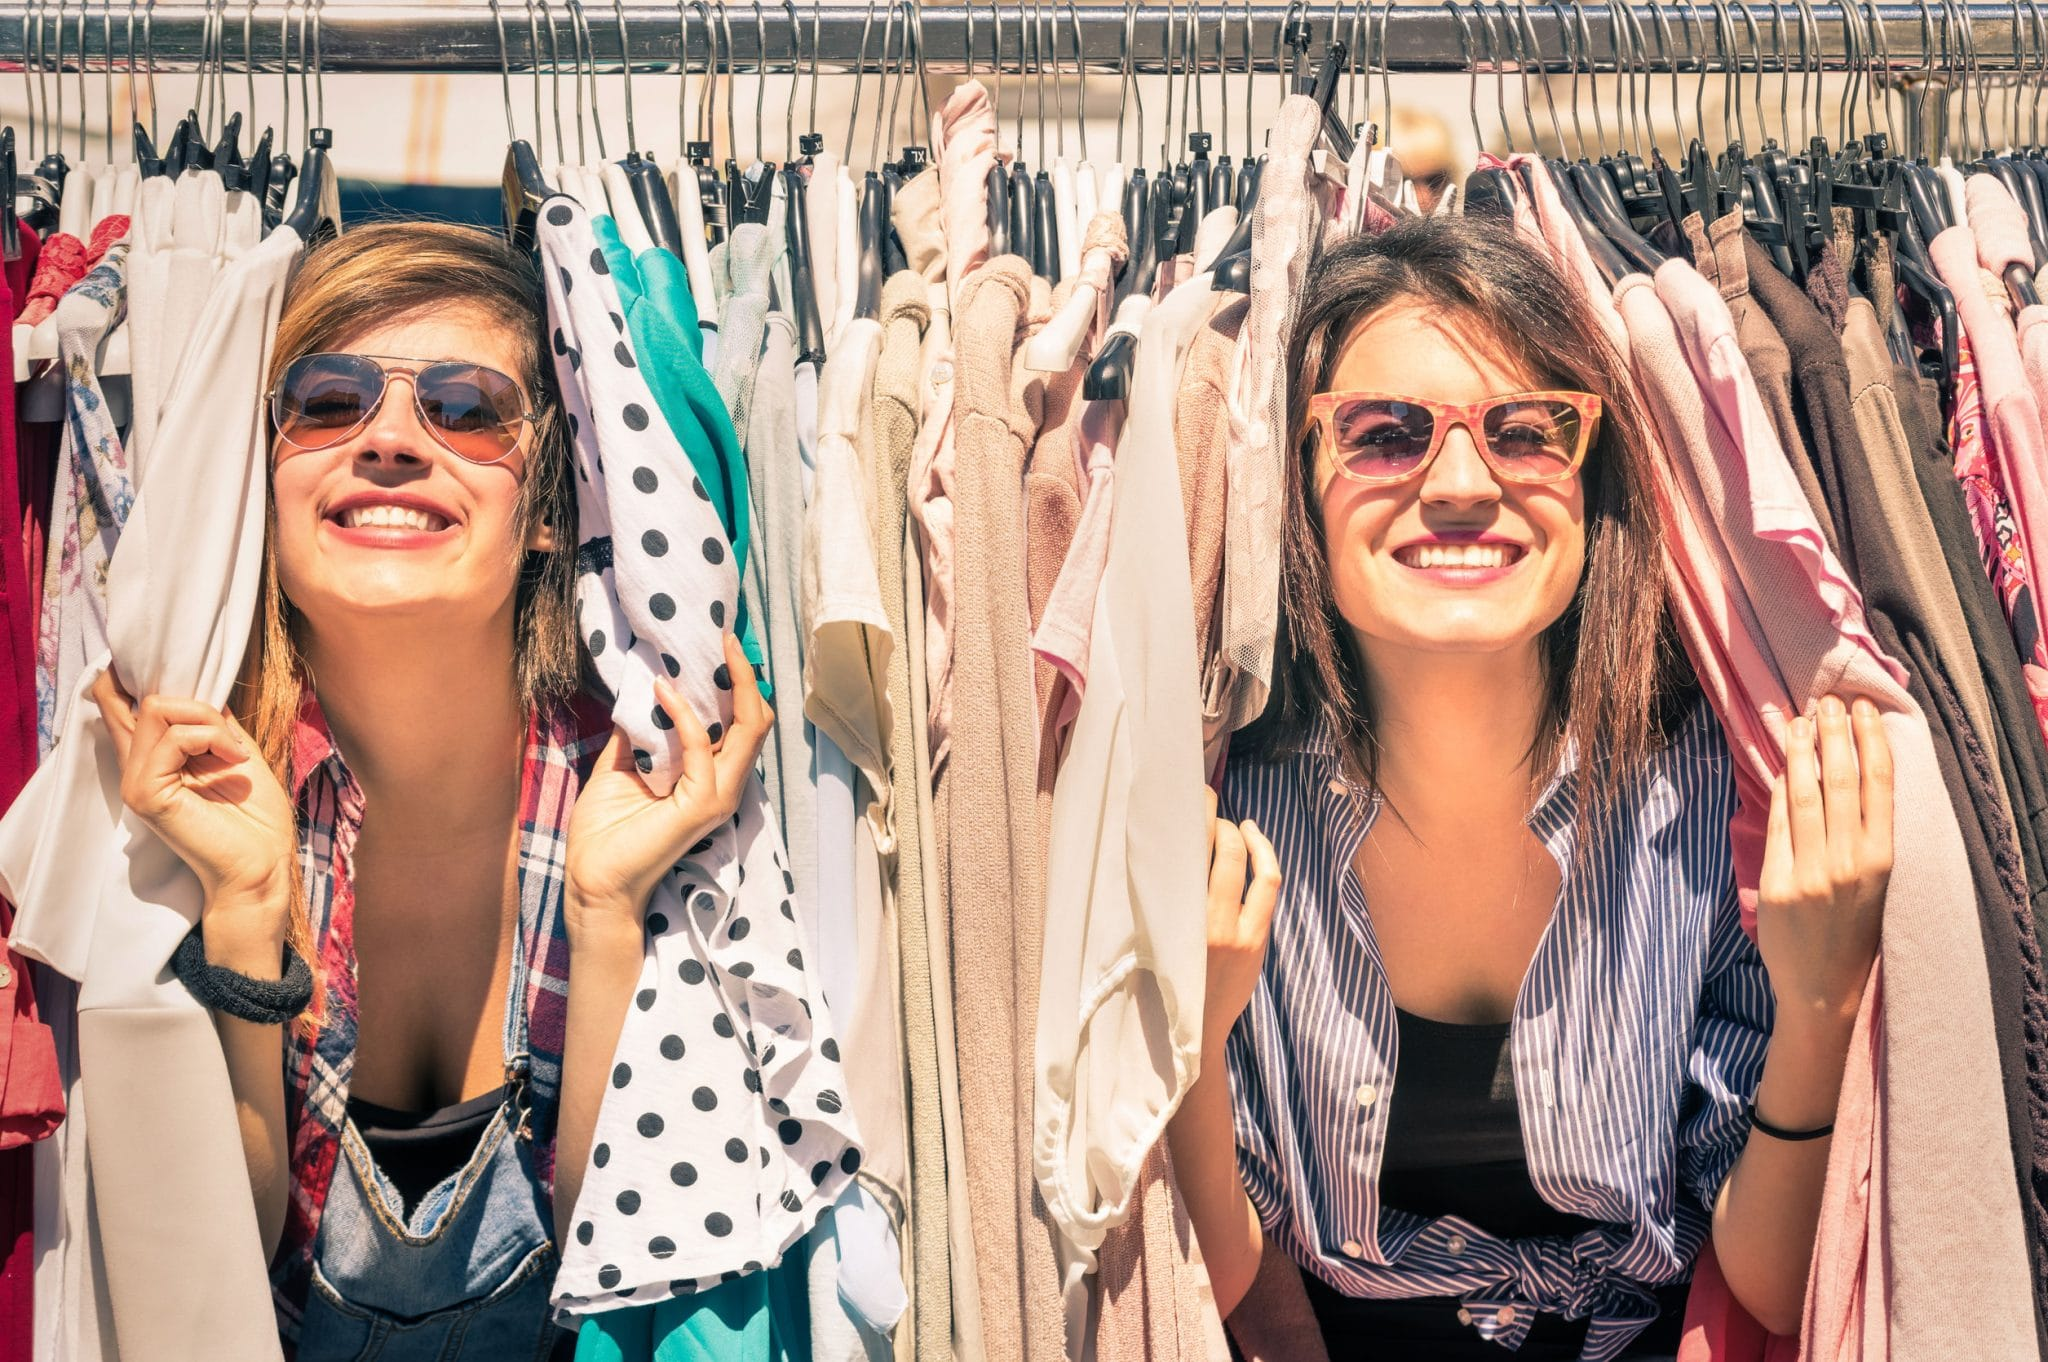 Top 8 Marketing Lessons From My Amazing New Wardrobe